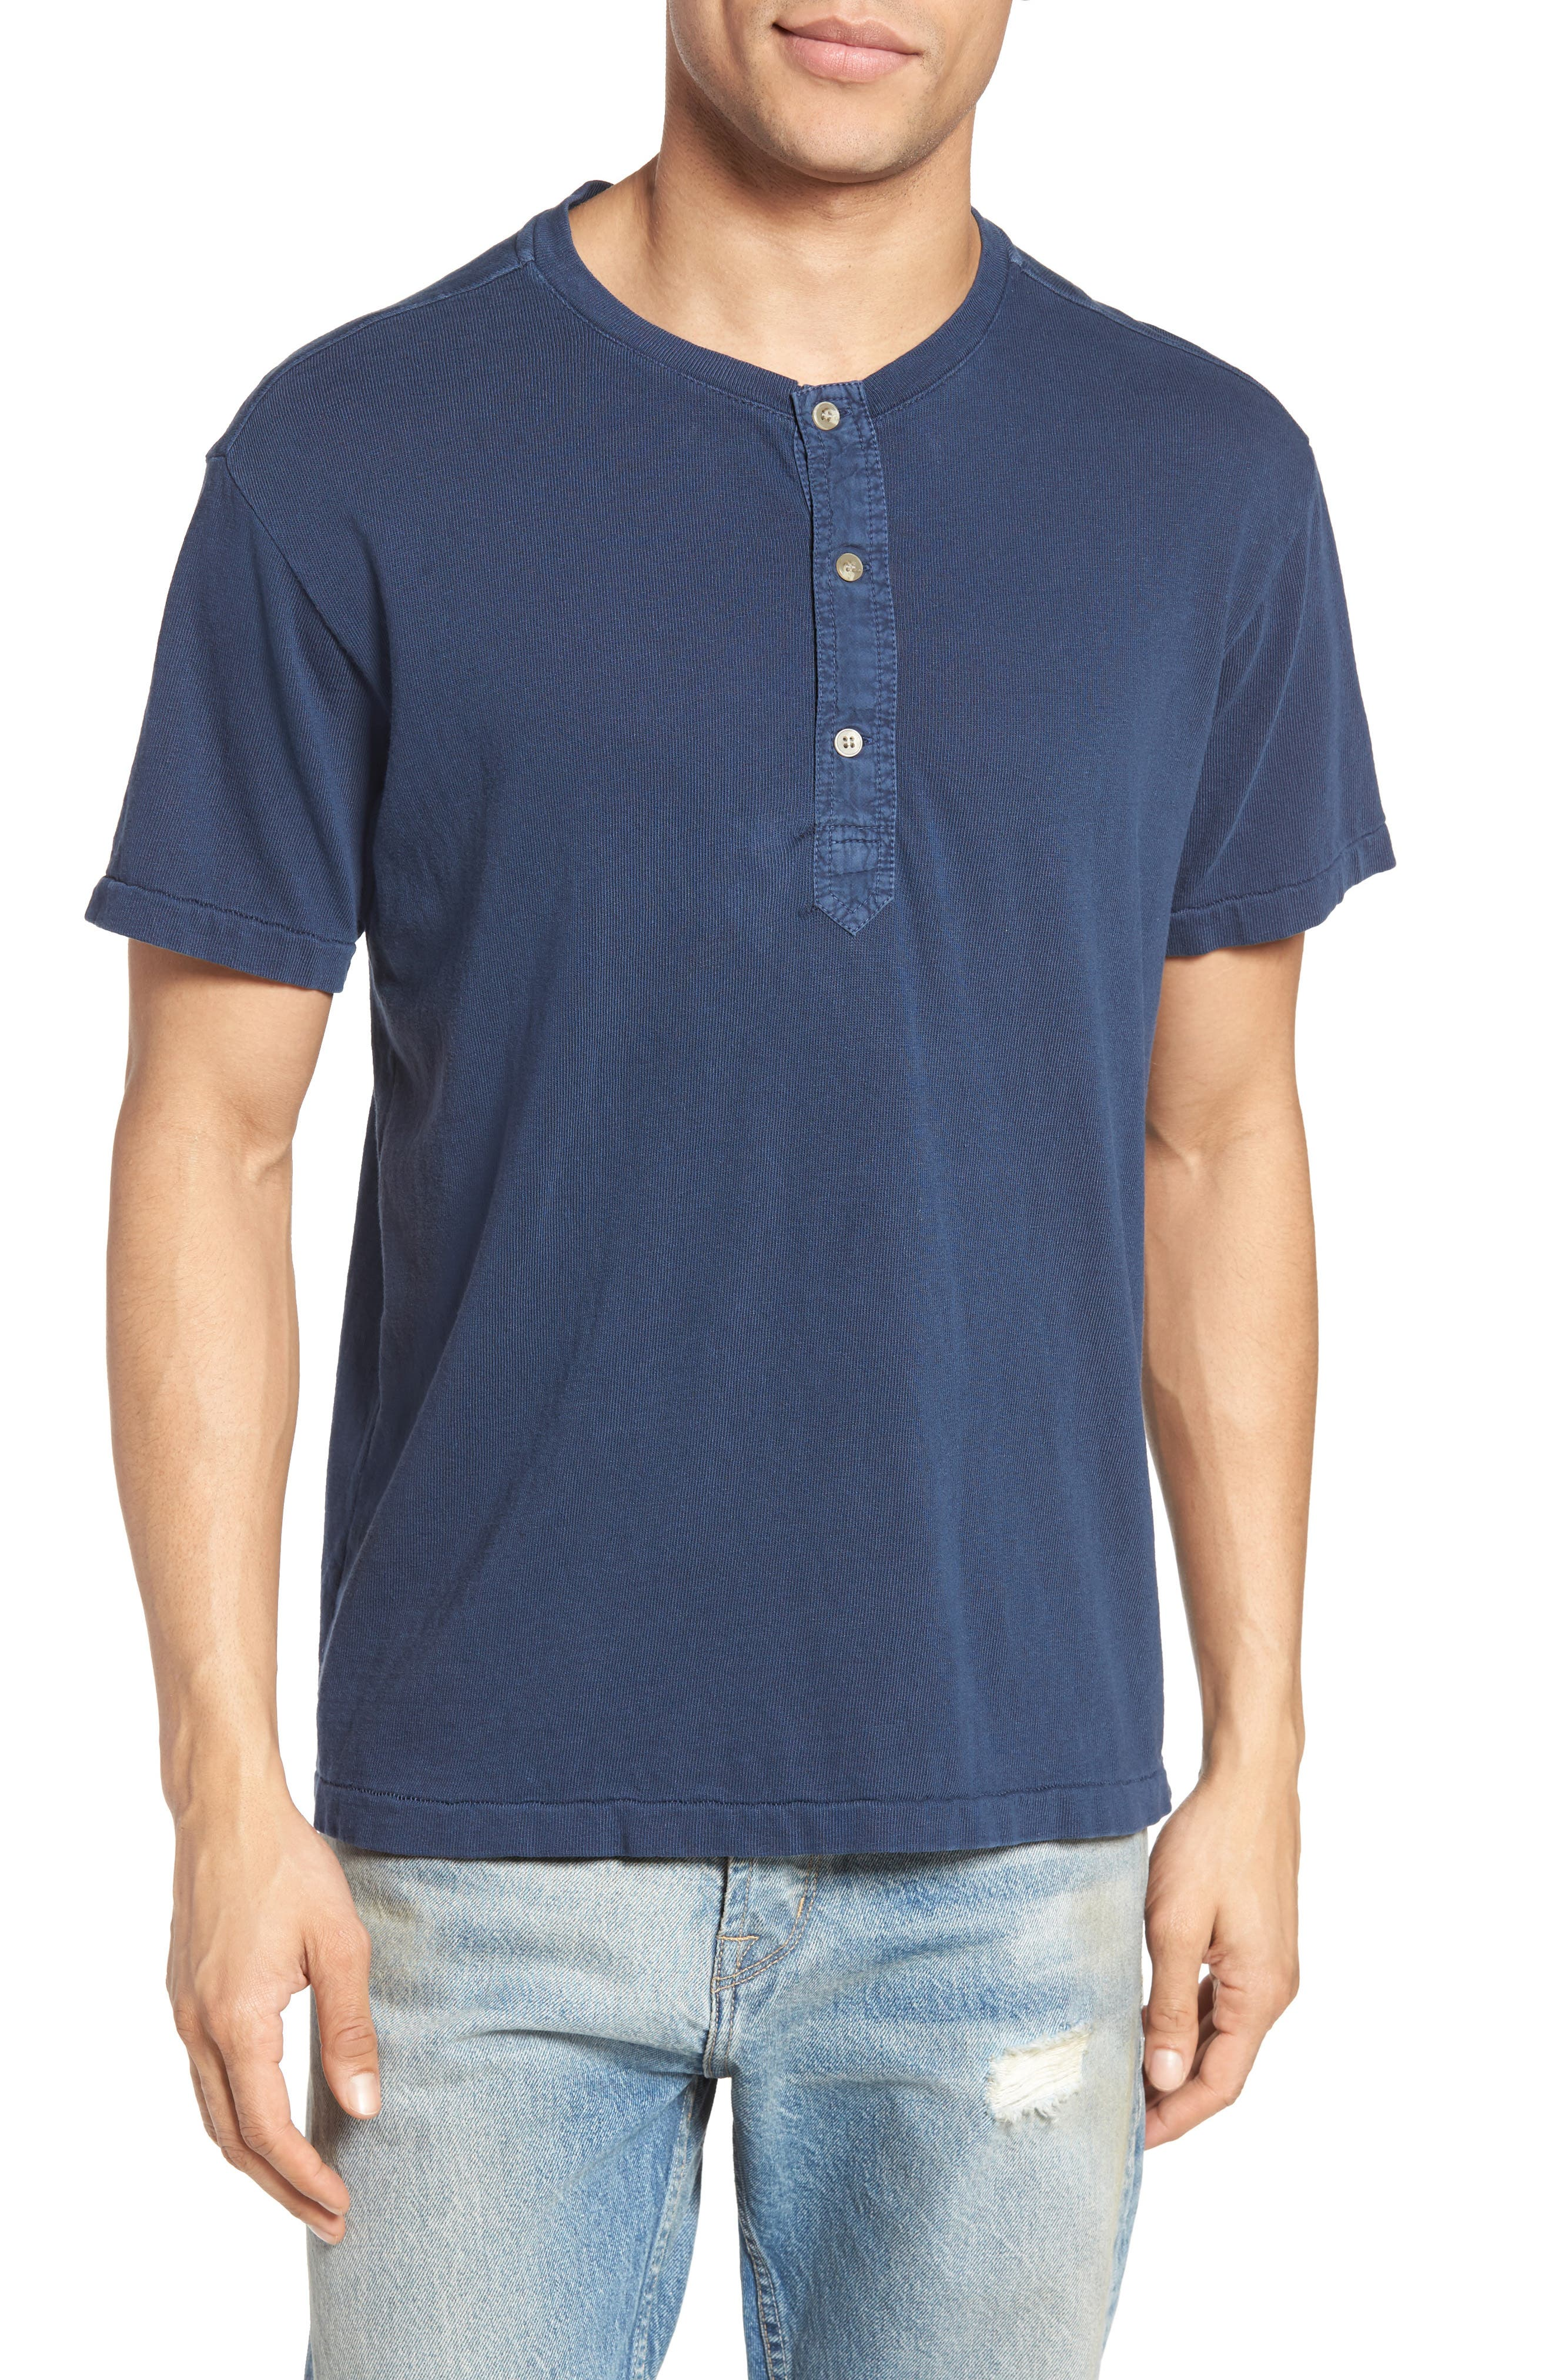 CURRENT/ELLIOTT Classic Fit Summer Henley